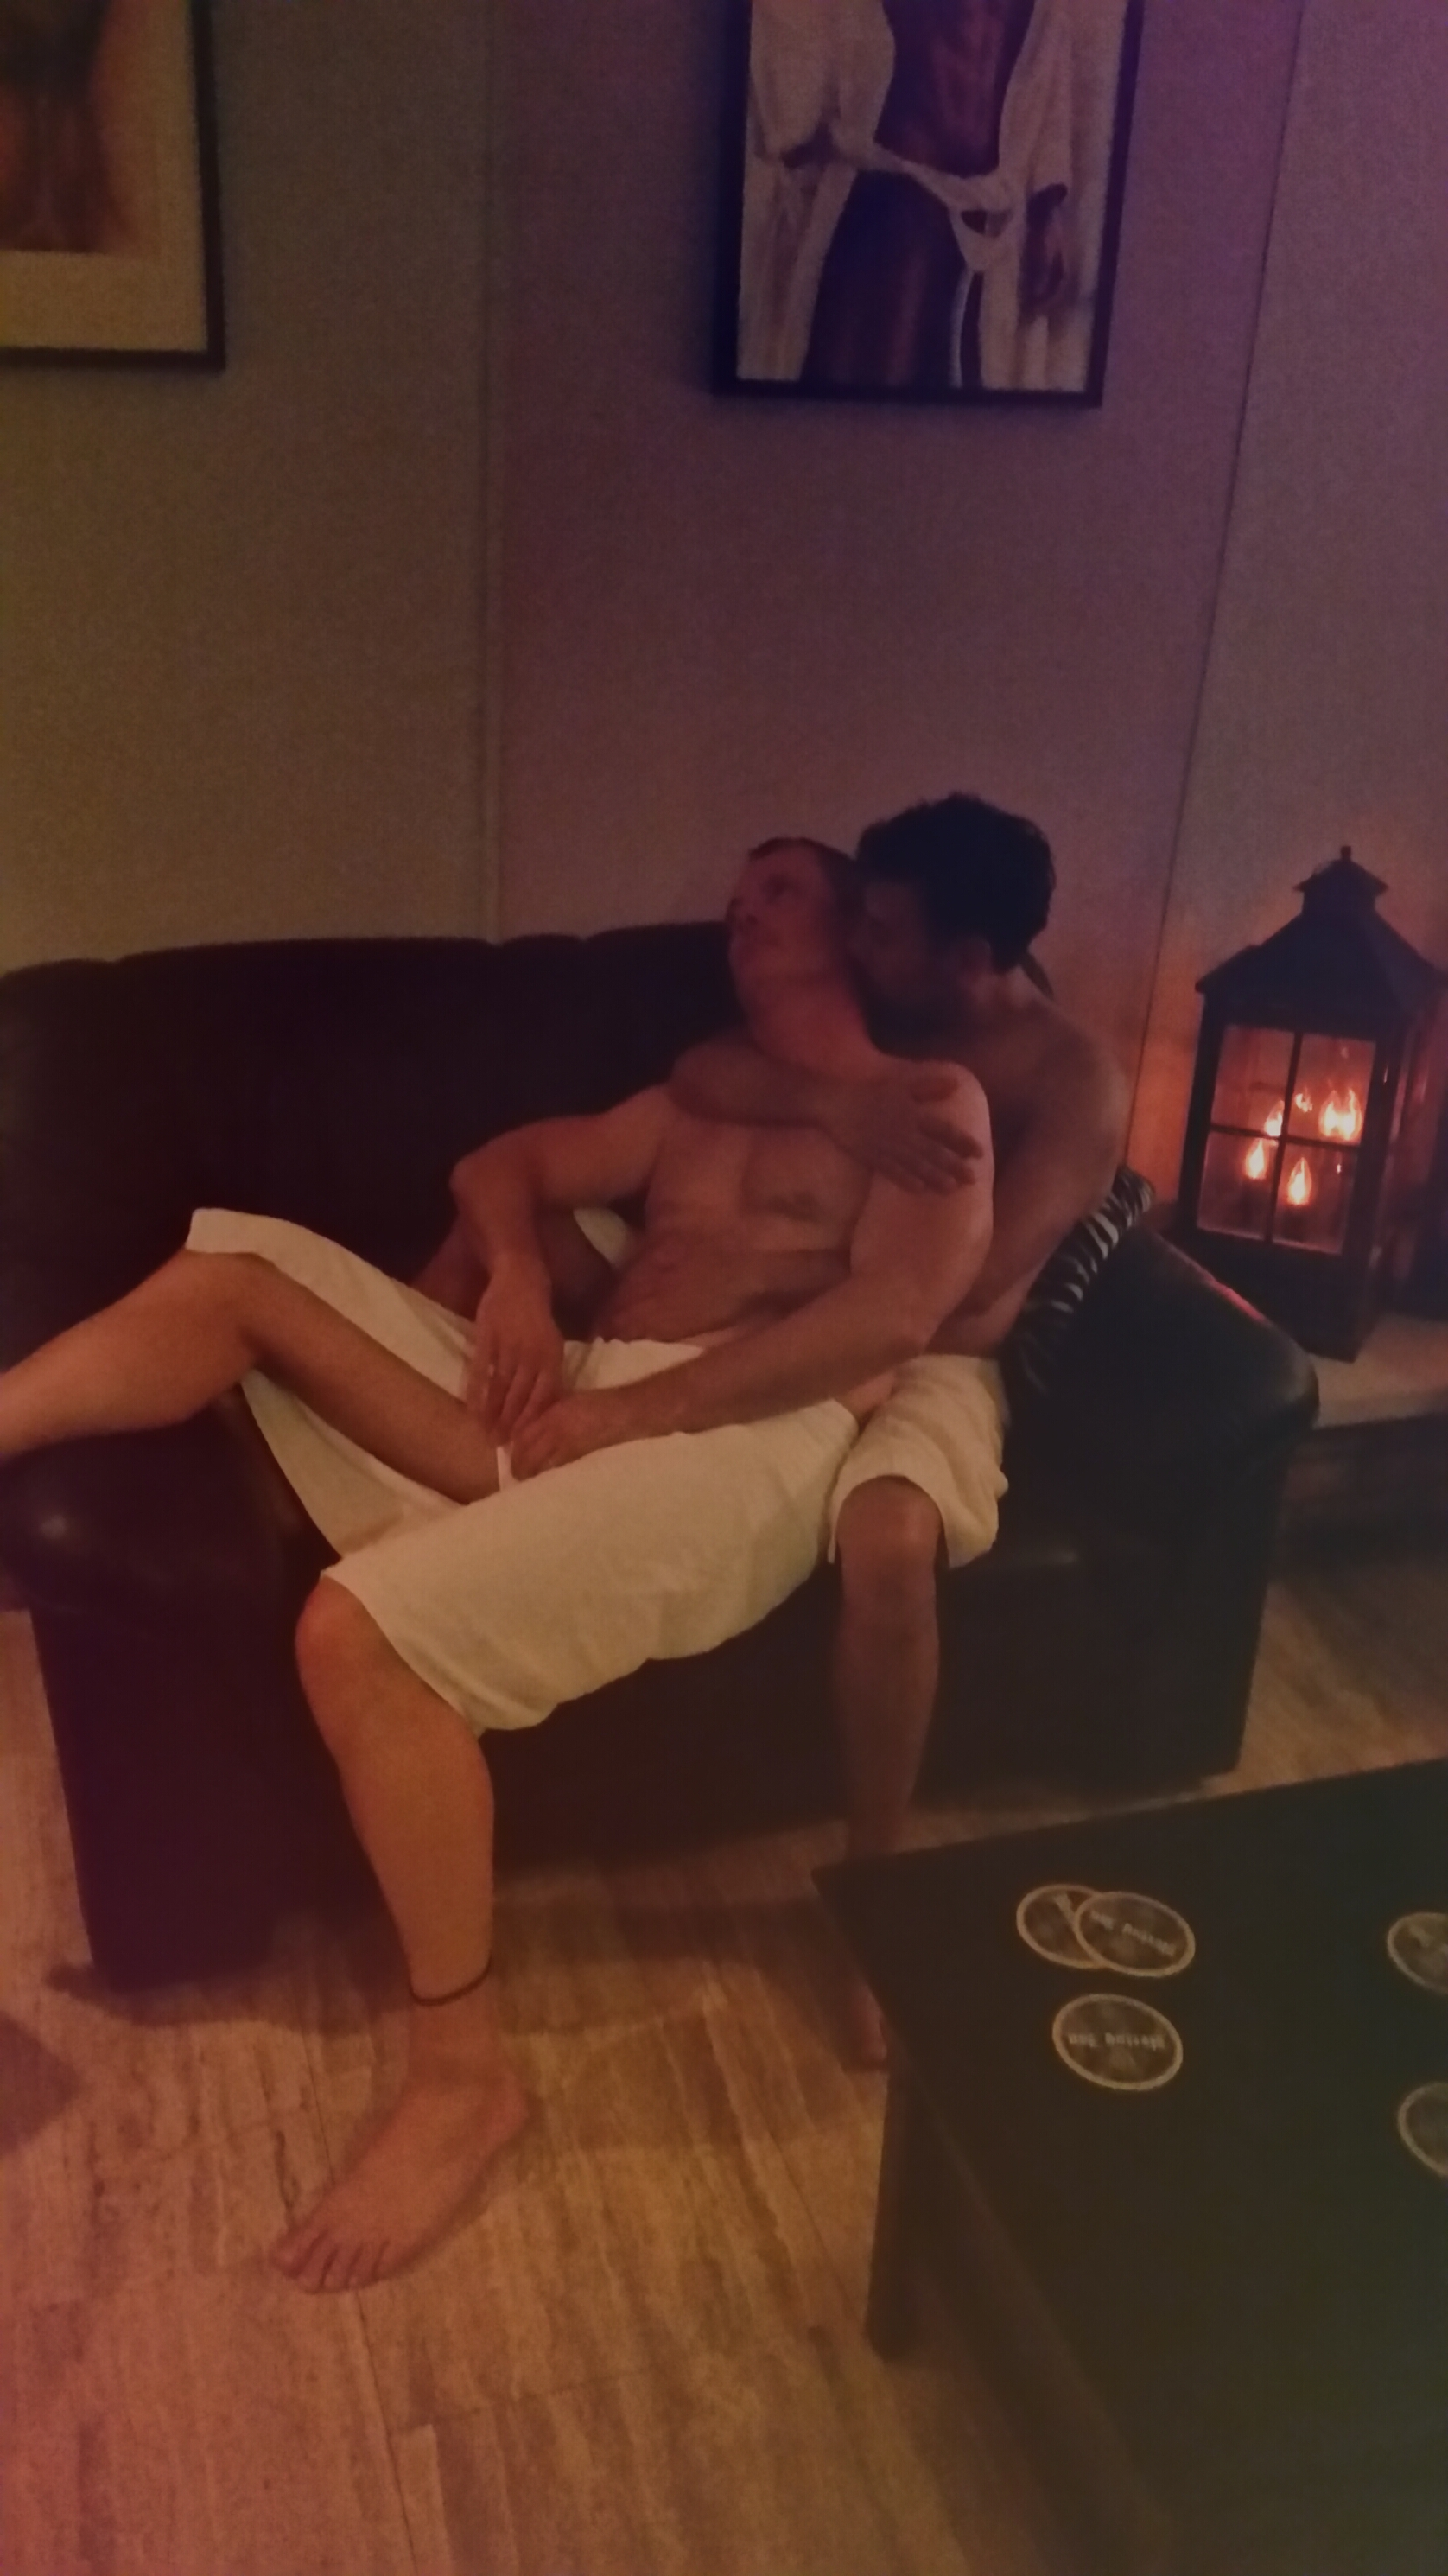 nude chat billig thai massasje oslo